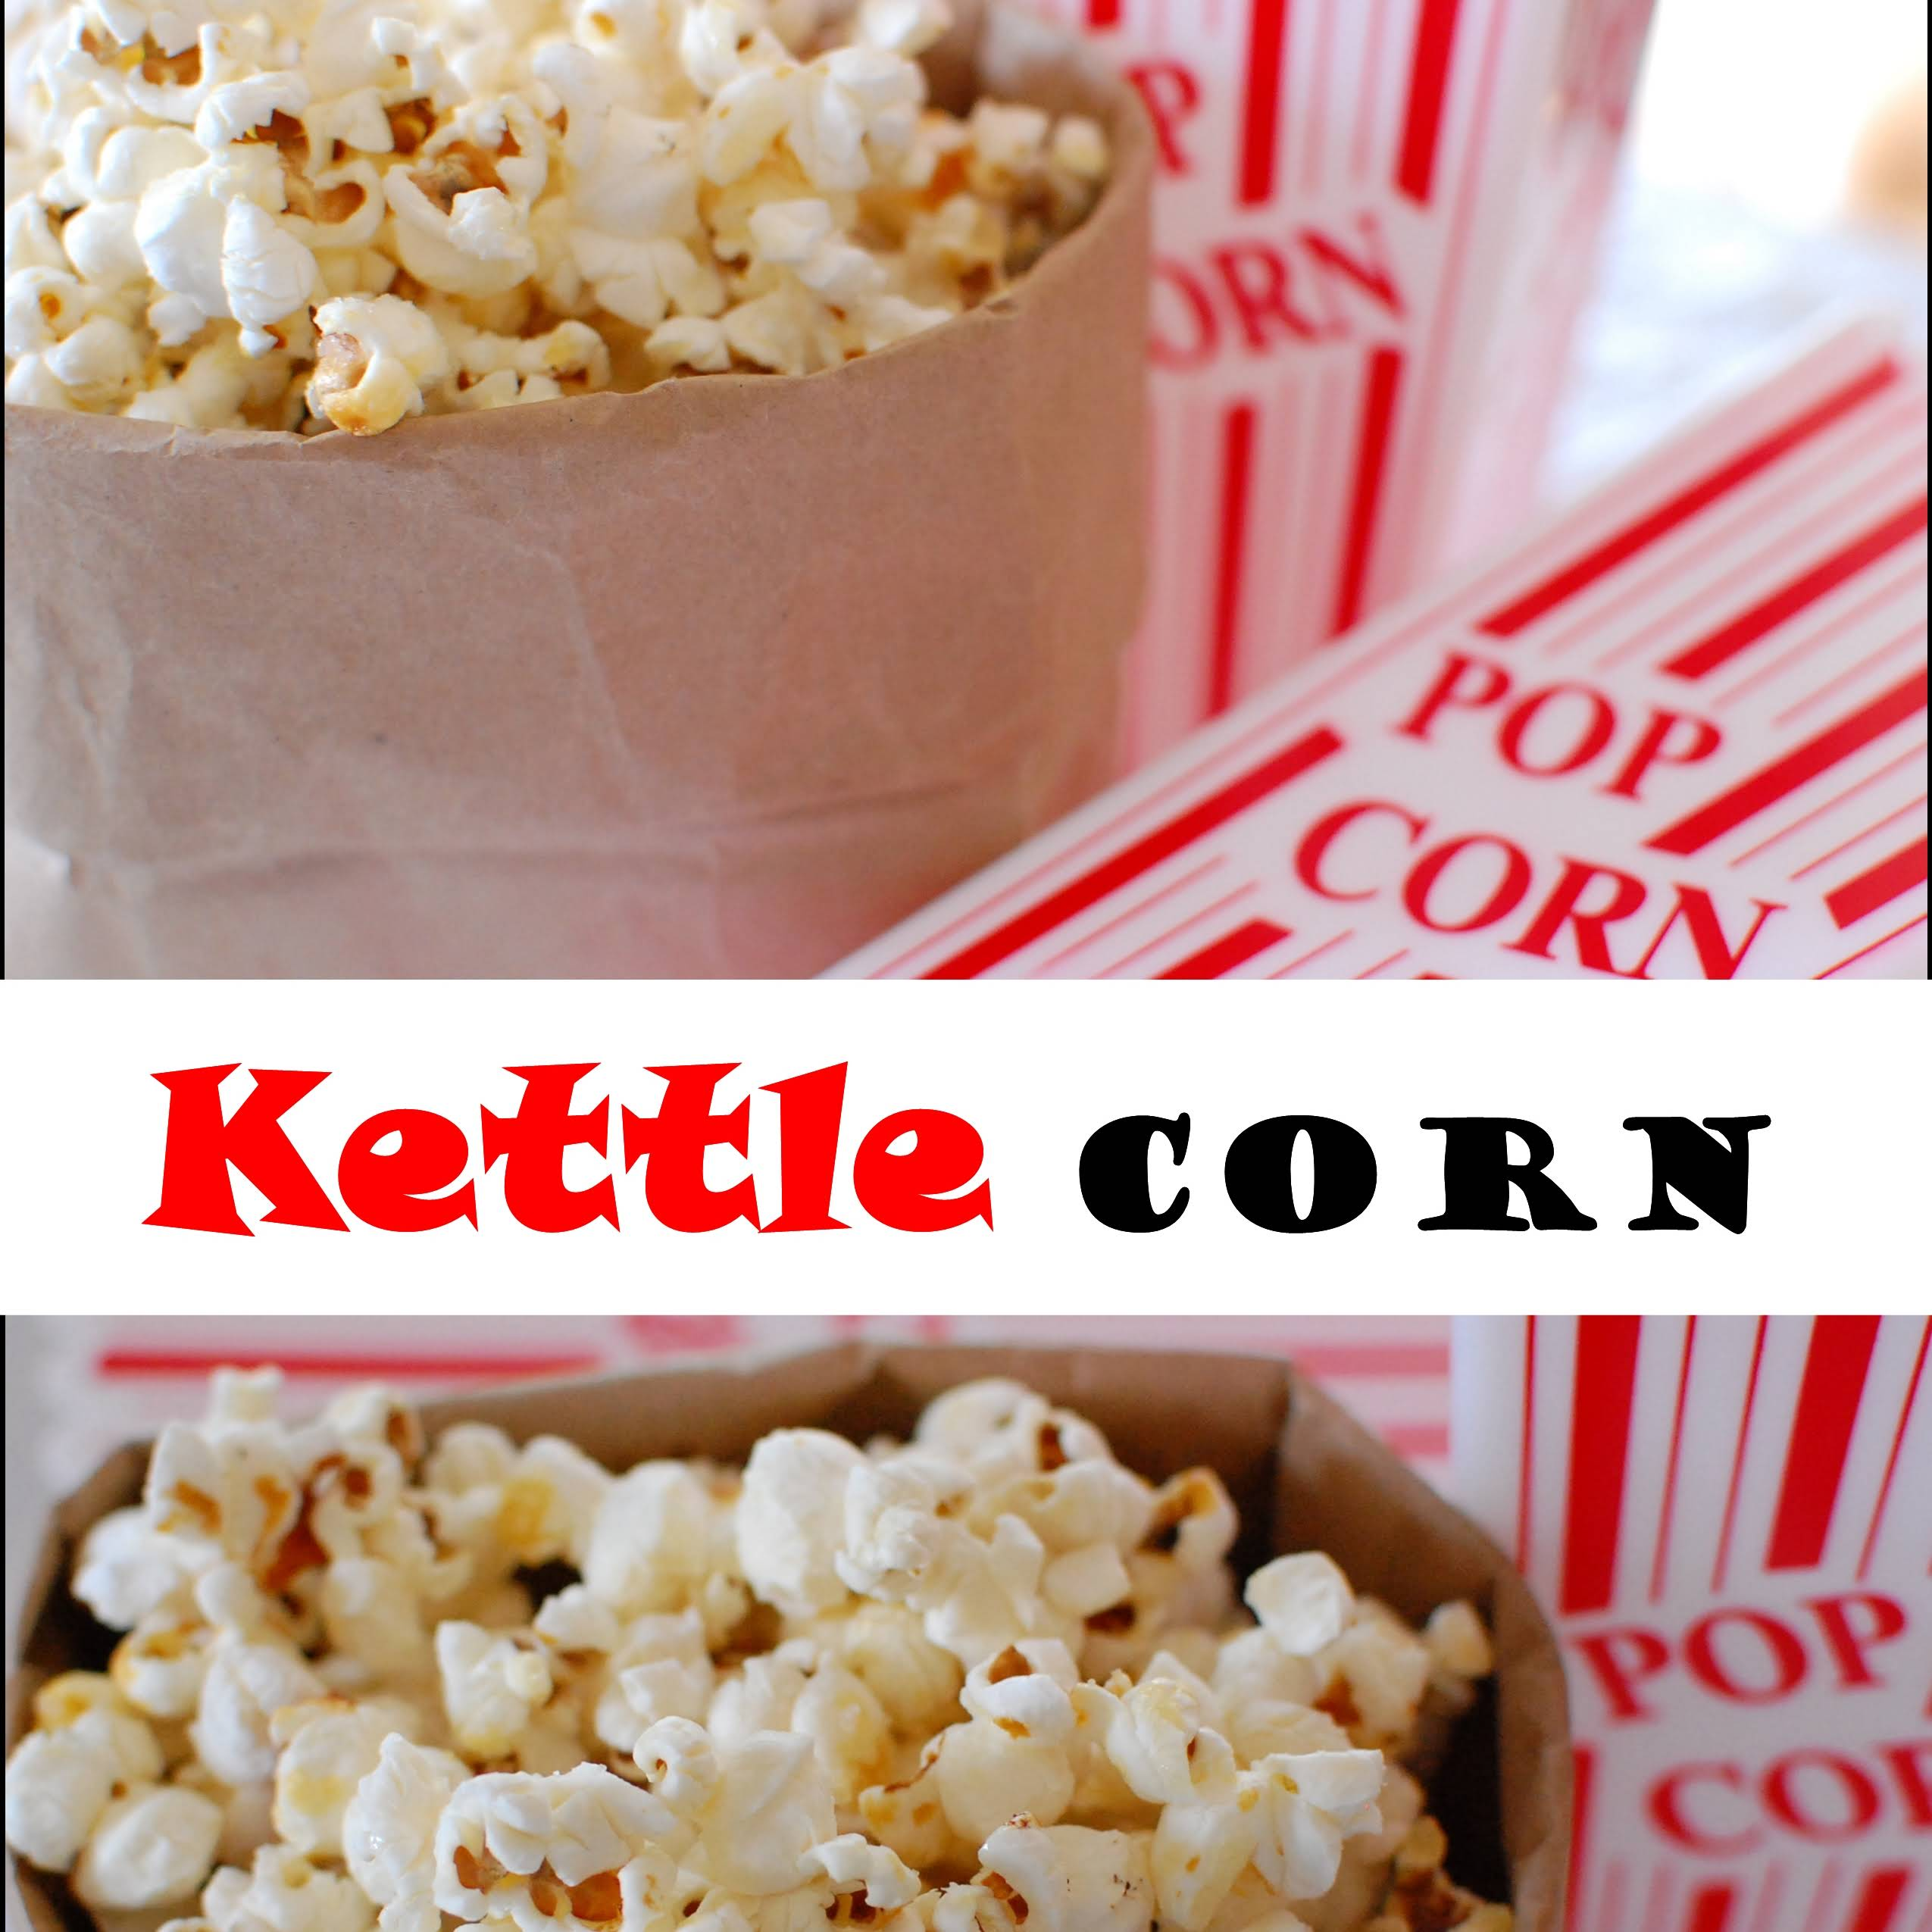 Documentaries and Kettle Corn